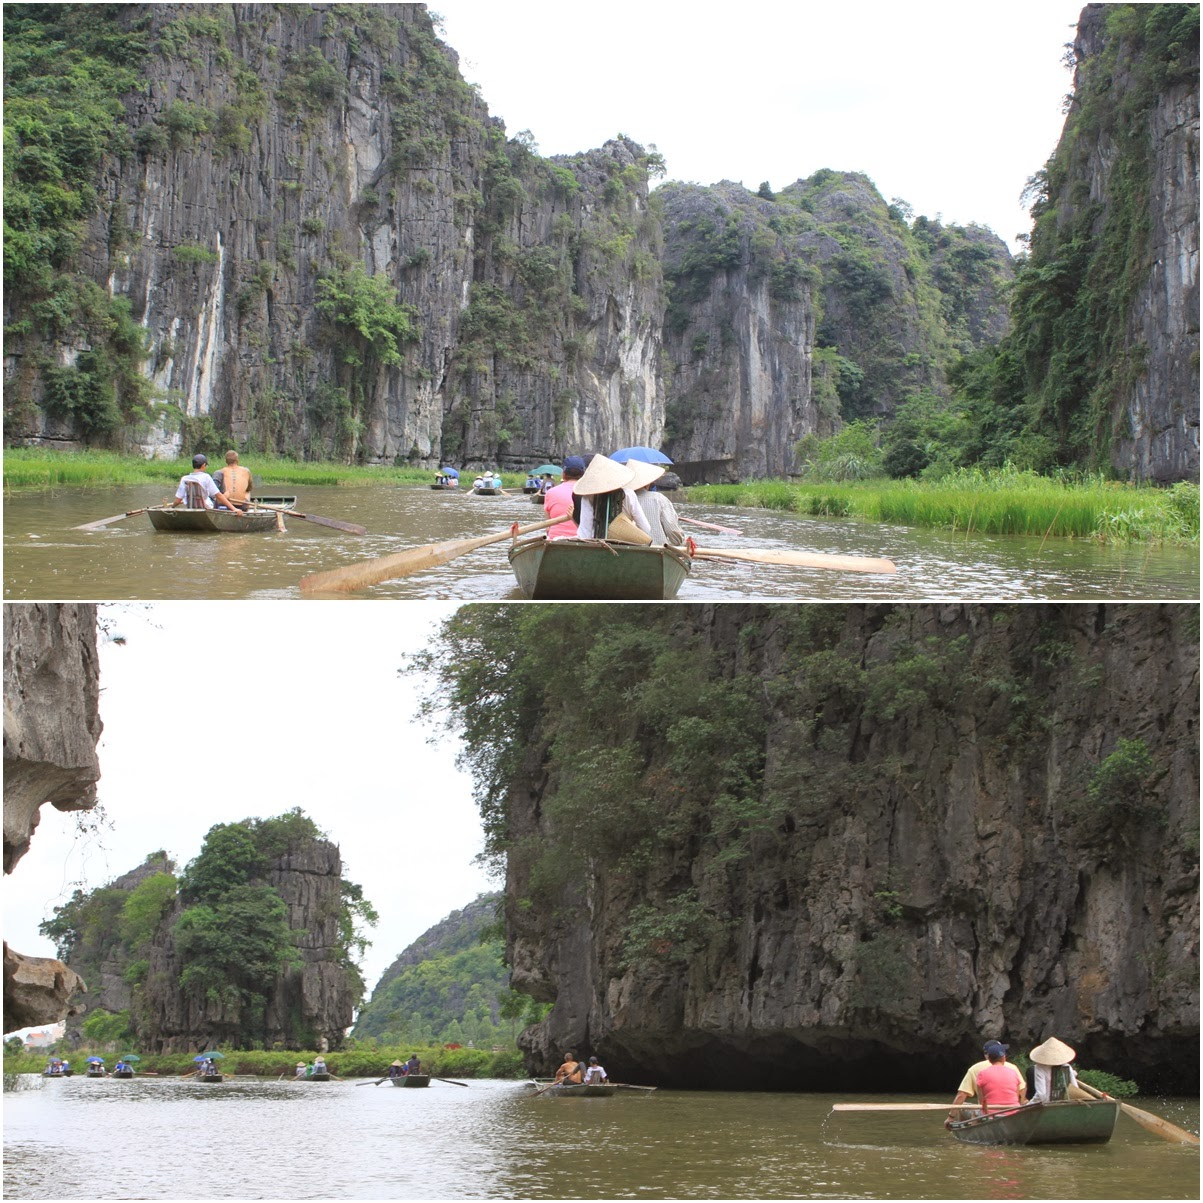 Another beautiful natural landscape scenery on the way back to the port of Tam Coc near the city of Ninh Bình in northern Vietnam